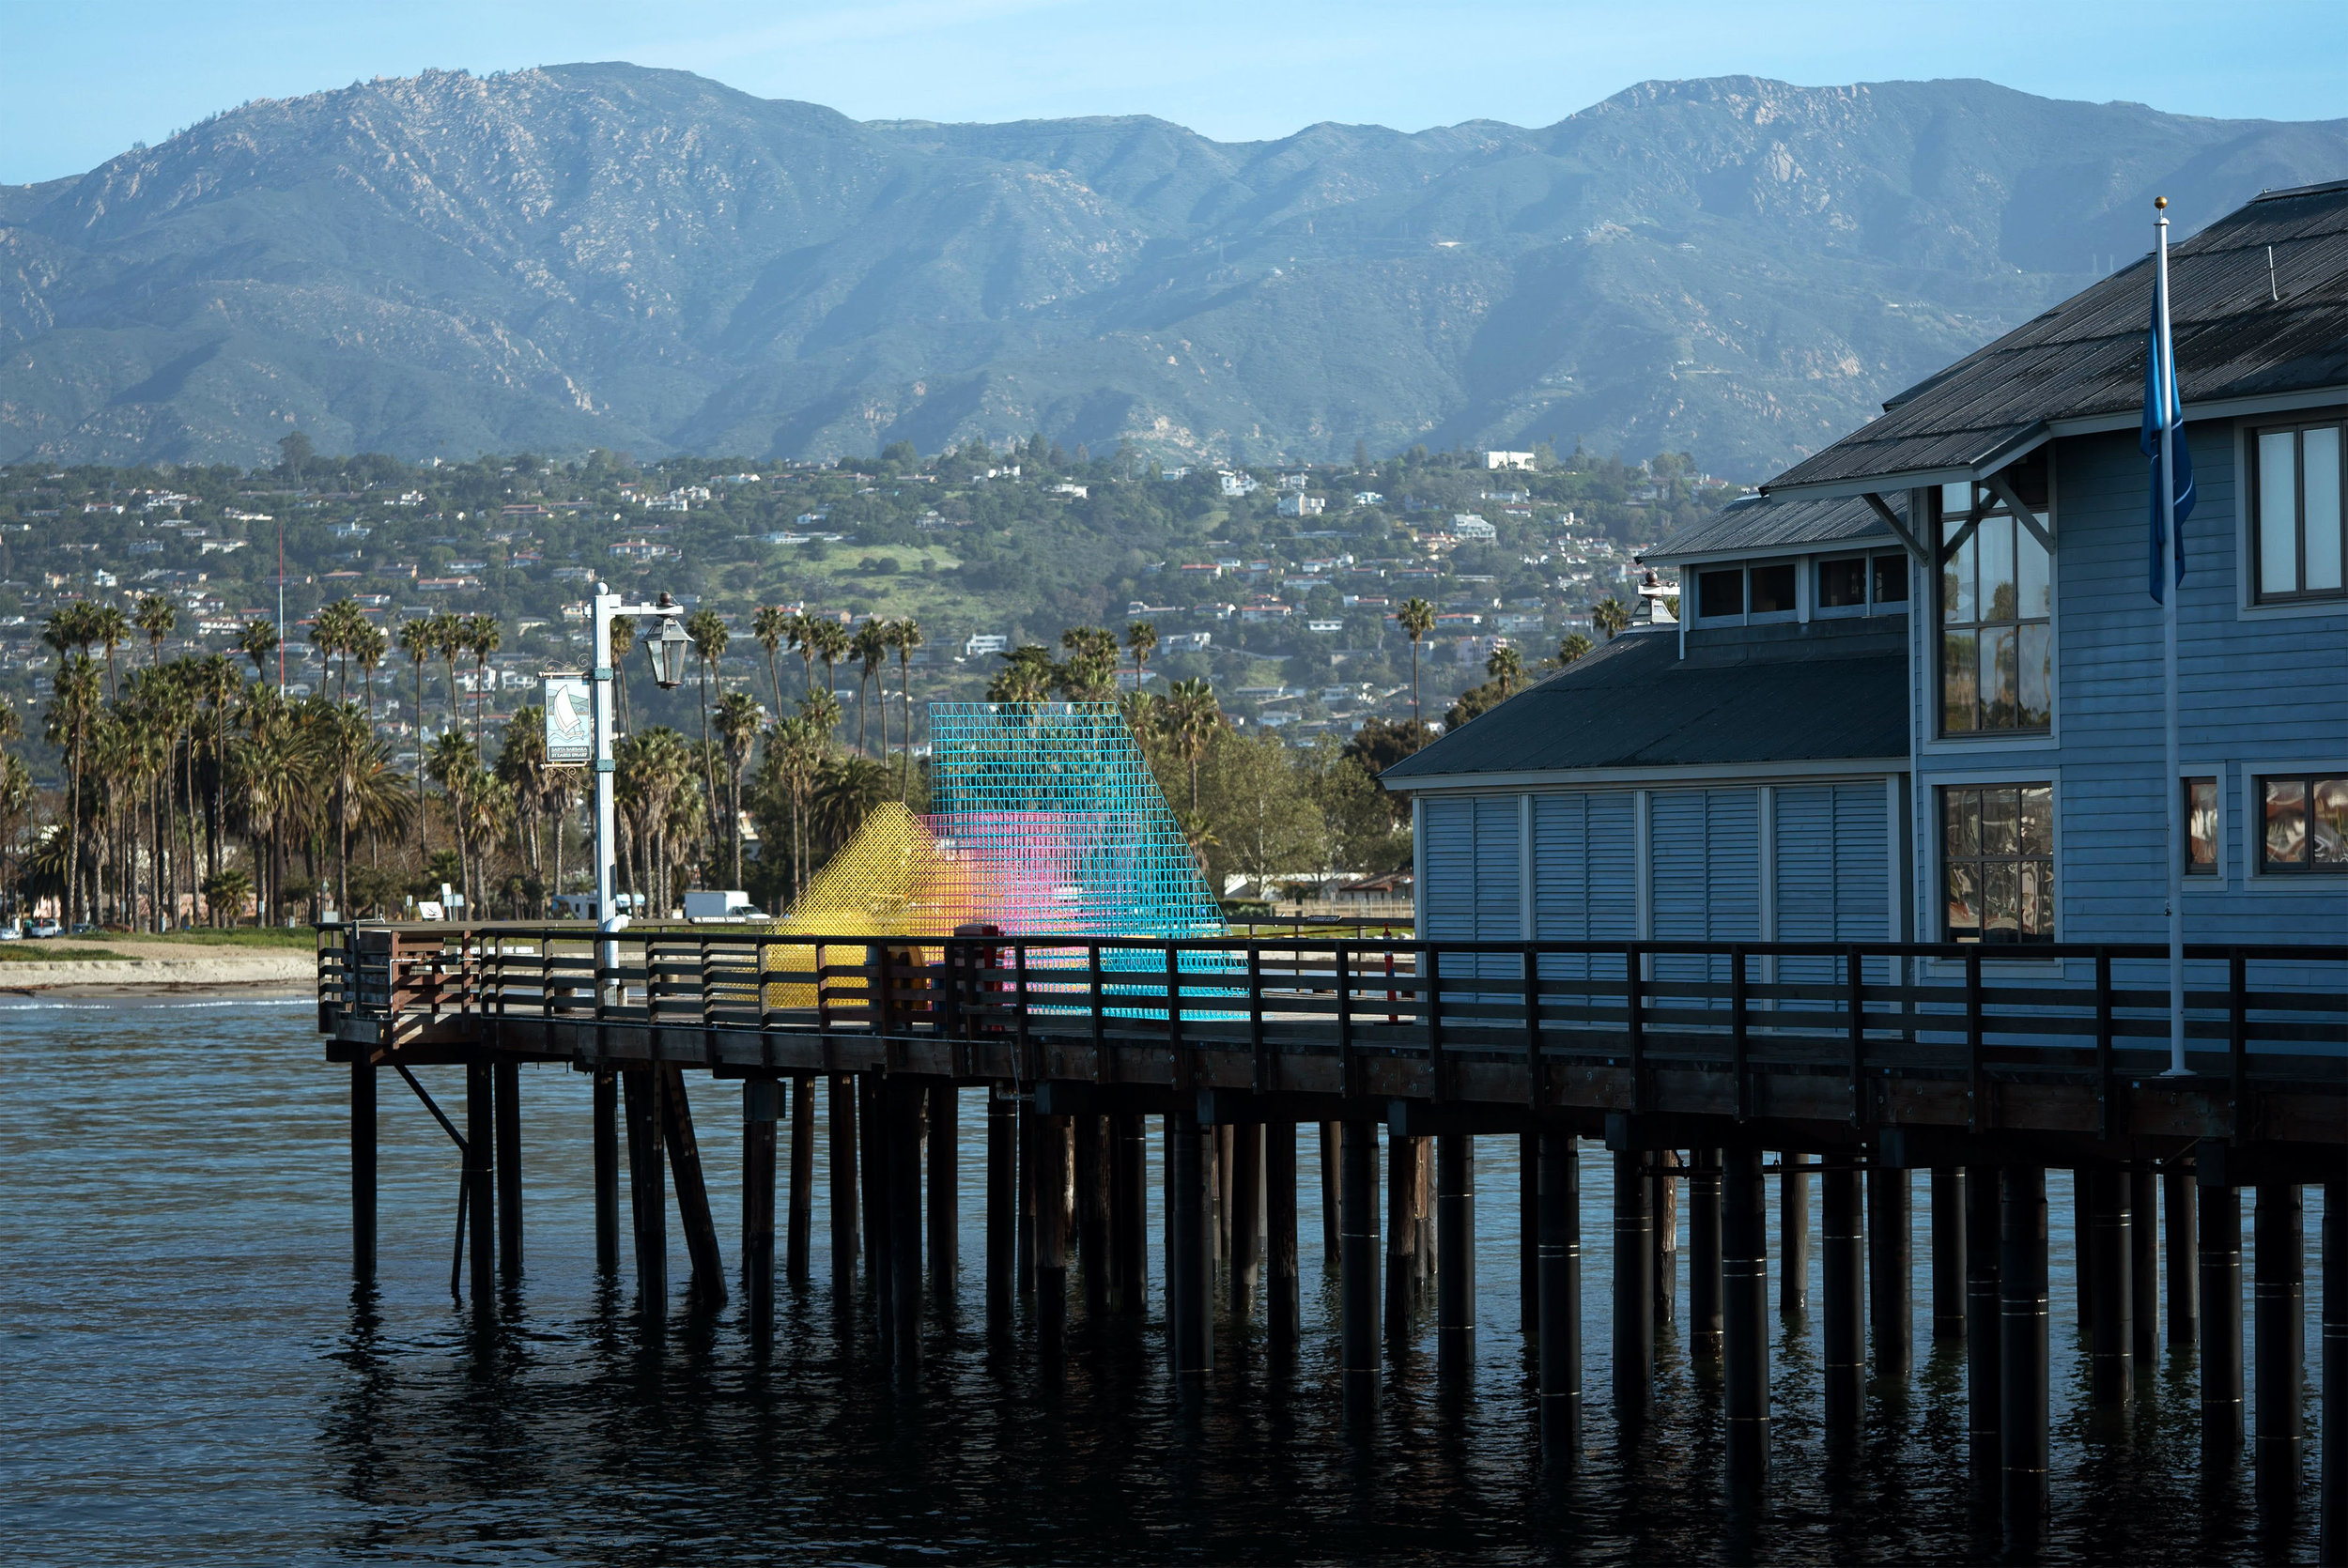 Runaway  at Stearns Wharf with the Santa Ynez Mountains in the background. Photograph from Elliot Lowndes.